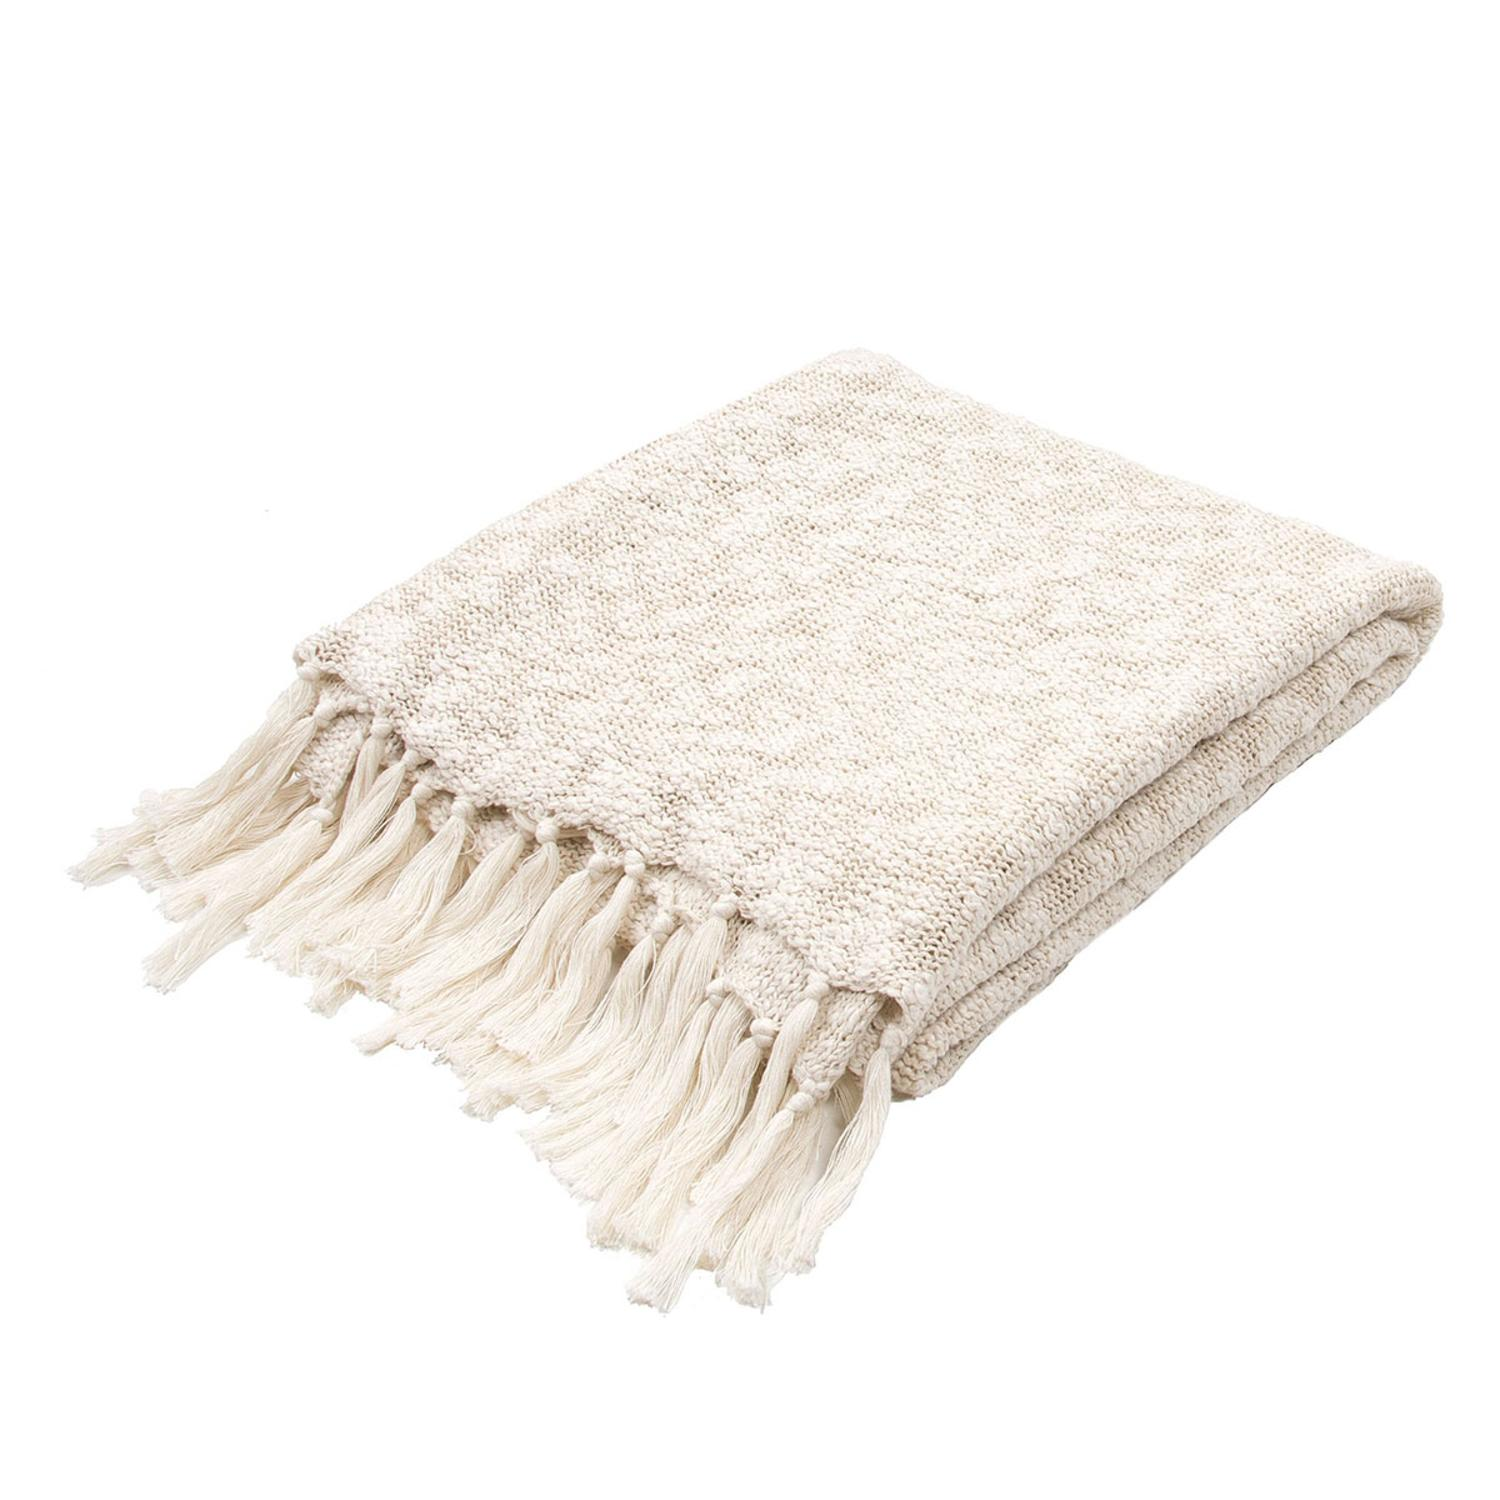 soft cream beige plush cotton woven fringed throw blanket  x  walmartcom. soft cream beige plush cotton woven fringed throw blanket  x